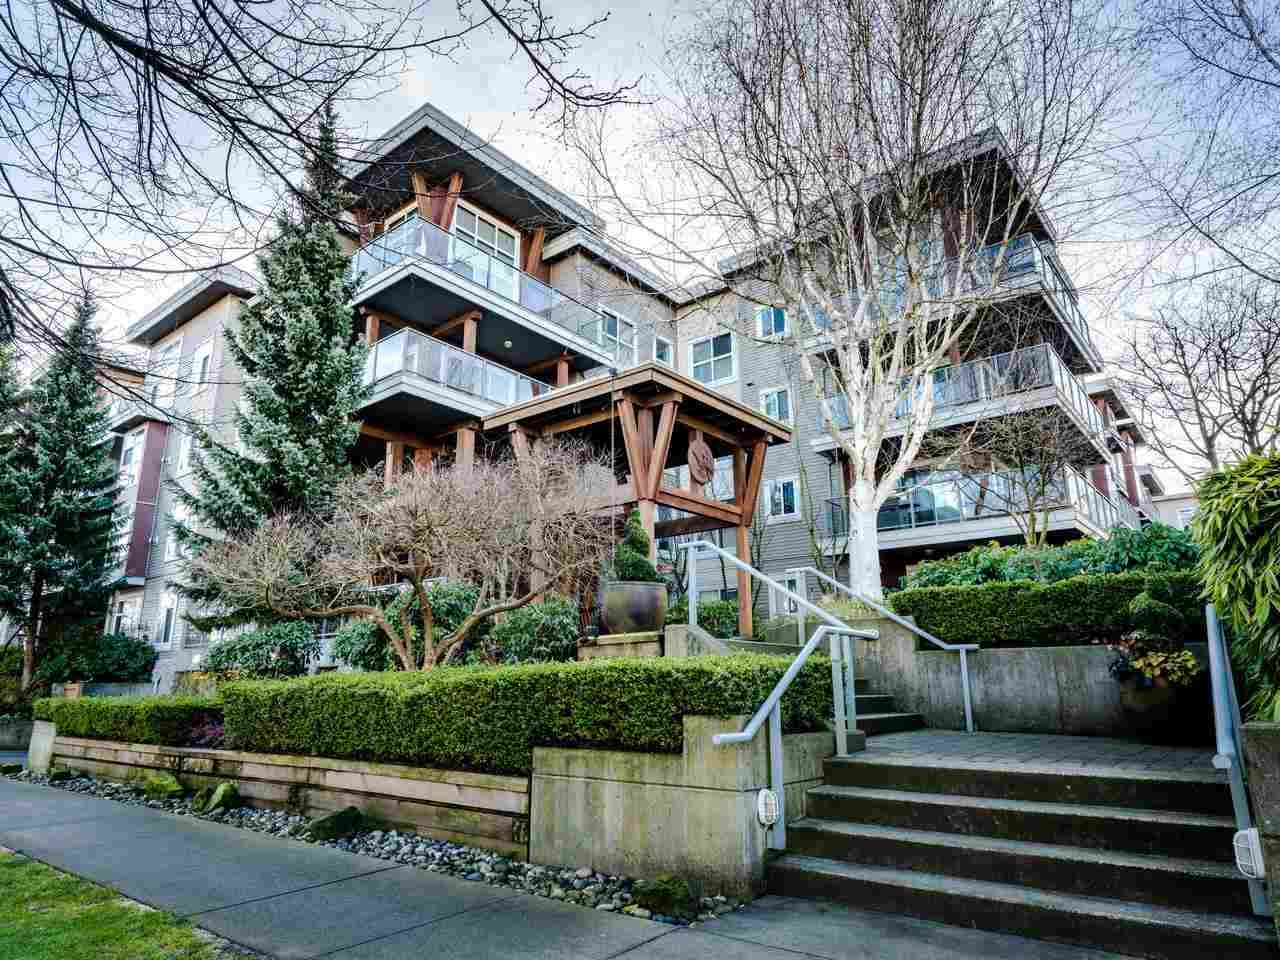 """Main Photo: 315 5700 ANDREWS Road in Richmond: Steveston South Condo for sale in """"RIVERS REACH"""" : MLS®# R2437068"""